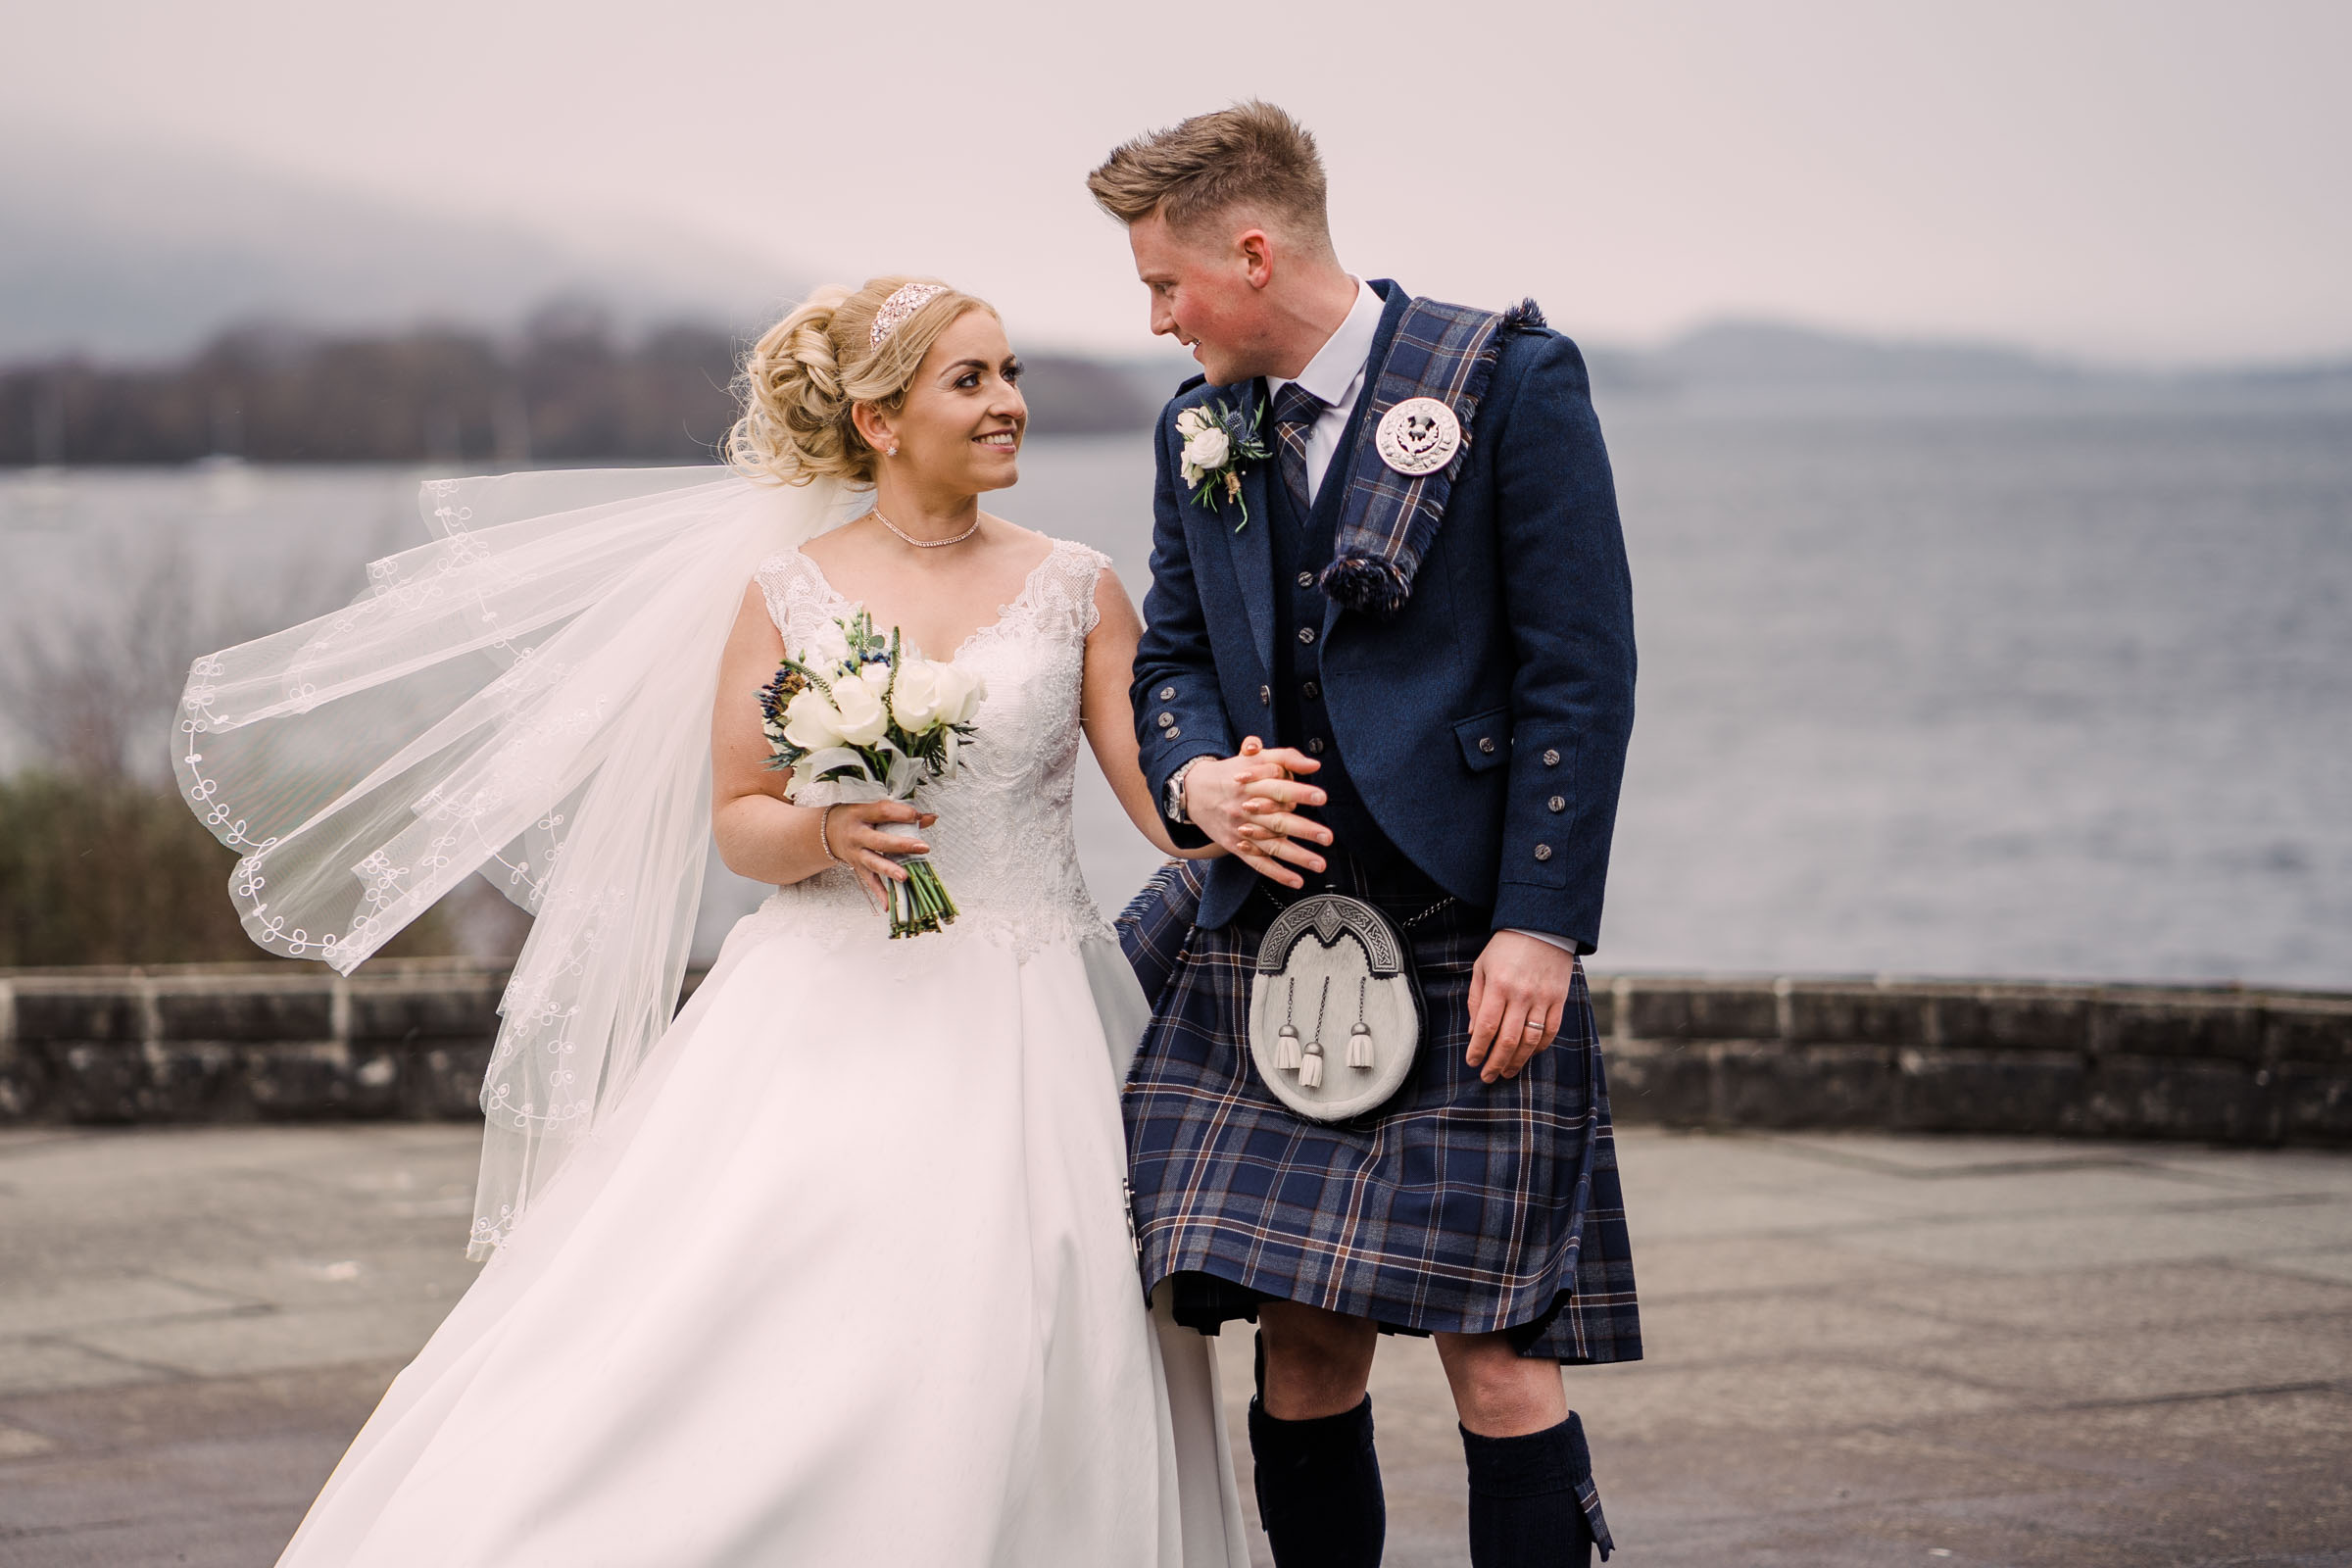 scottish-loch-lomond-wedding-photography-dearlyphotography (42 of 59).jpg